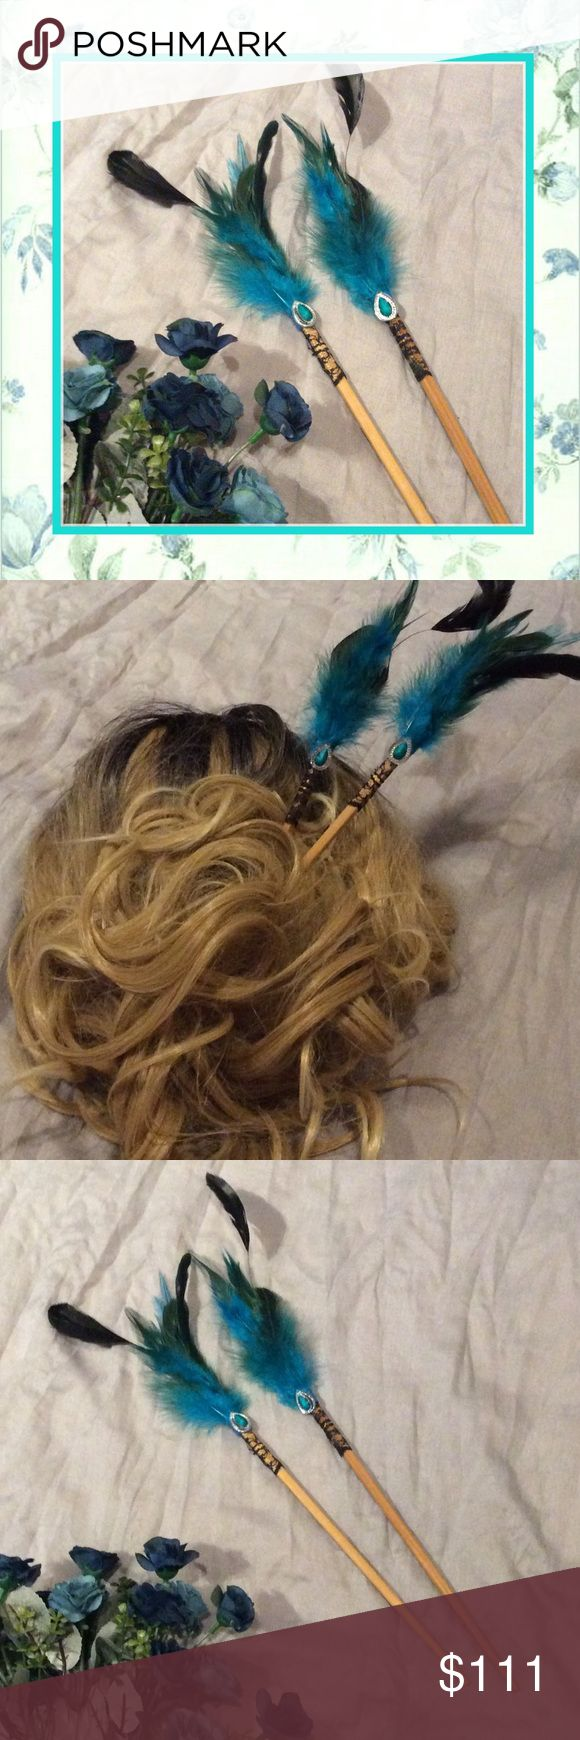 🌺New 2pc: blue hair feather Bling lace chopsticks Unique Styles New Very cute custom blue teal turquoise feathers and rhinestone chopstick set, can...